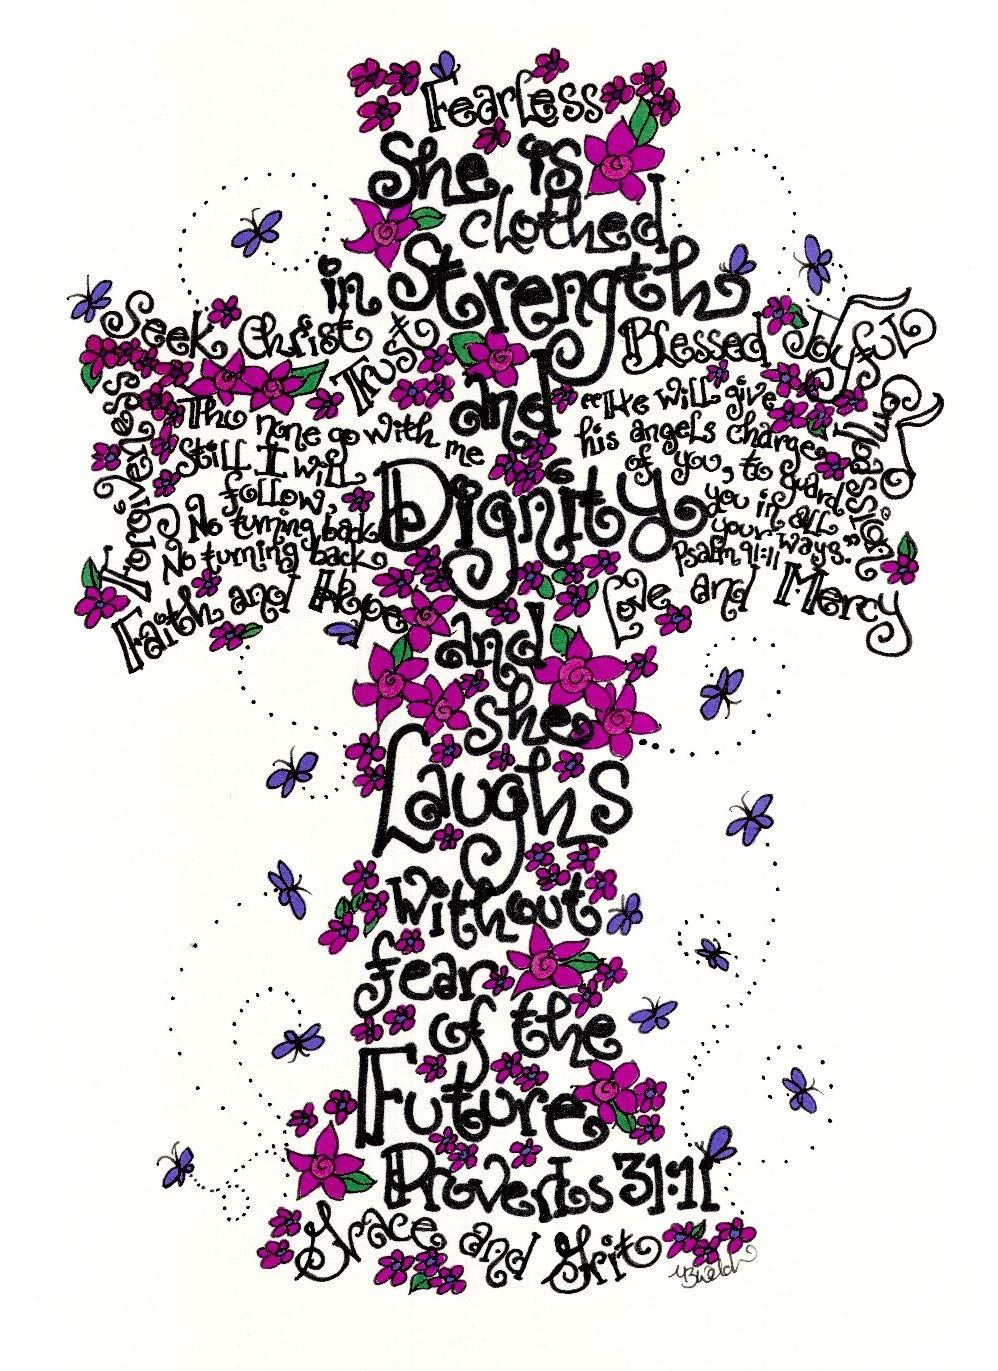 Fearless Cross 8x10 - Confirmation Gift for Girls